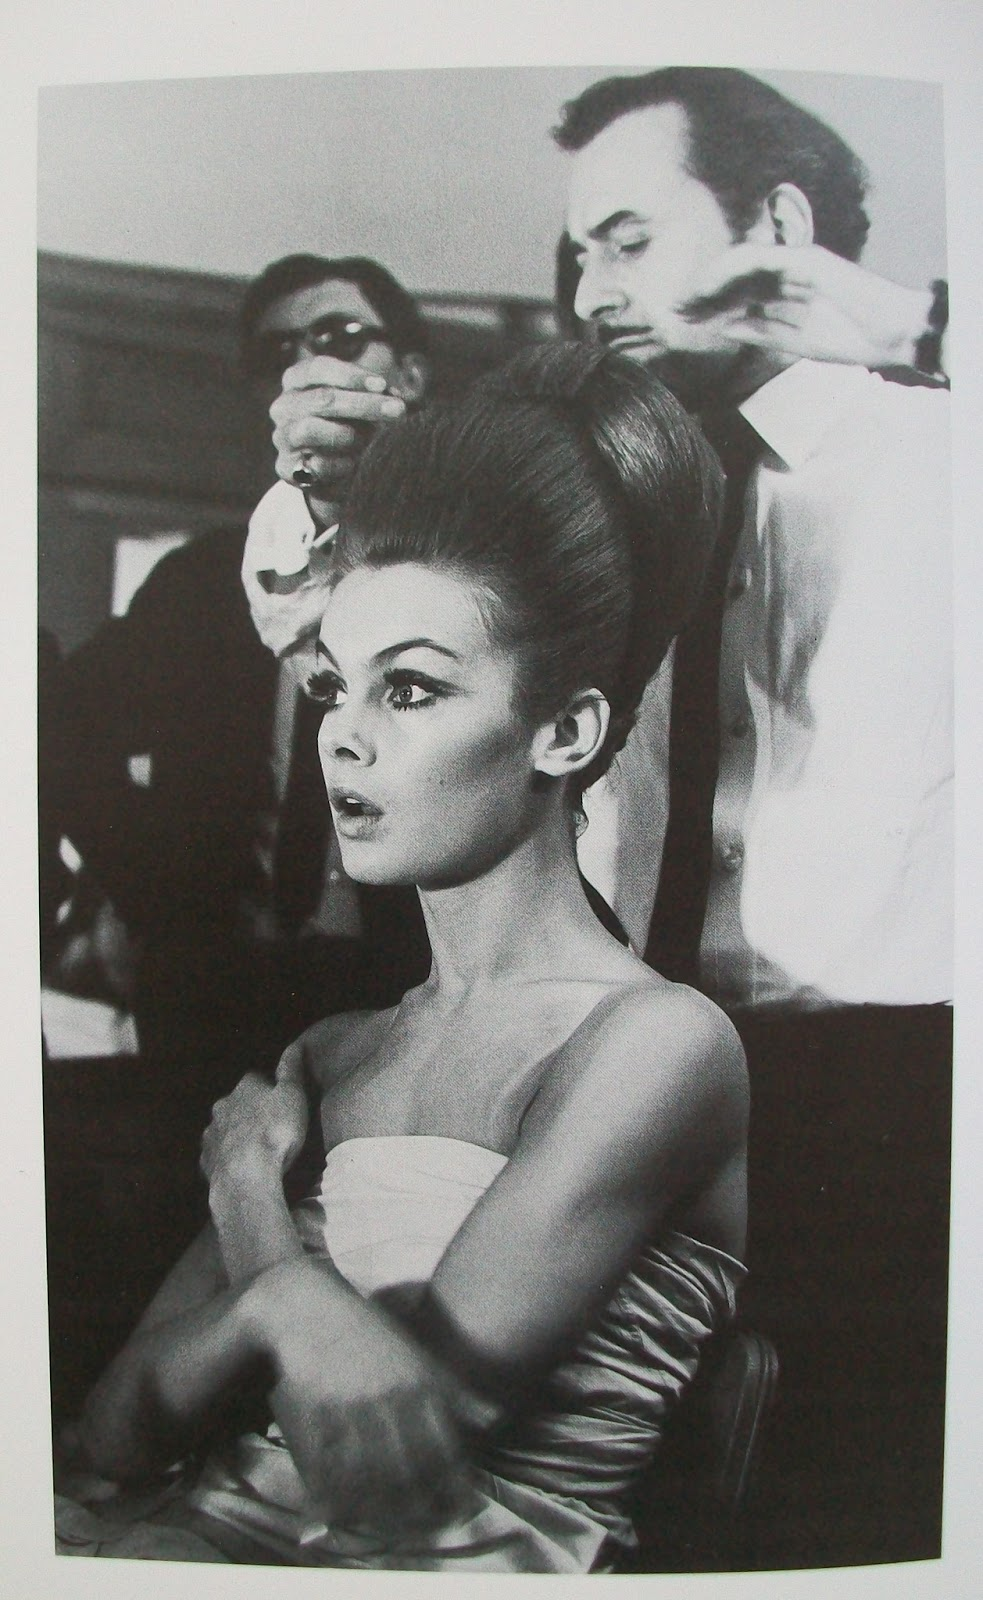 Shrimpton Being Styled By Hairstylist Alexandre As Reproduced In Radical Rags Bailey Has Said Of The Shrimps US Magazine Appearances What They Did To